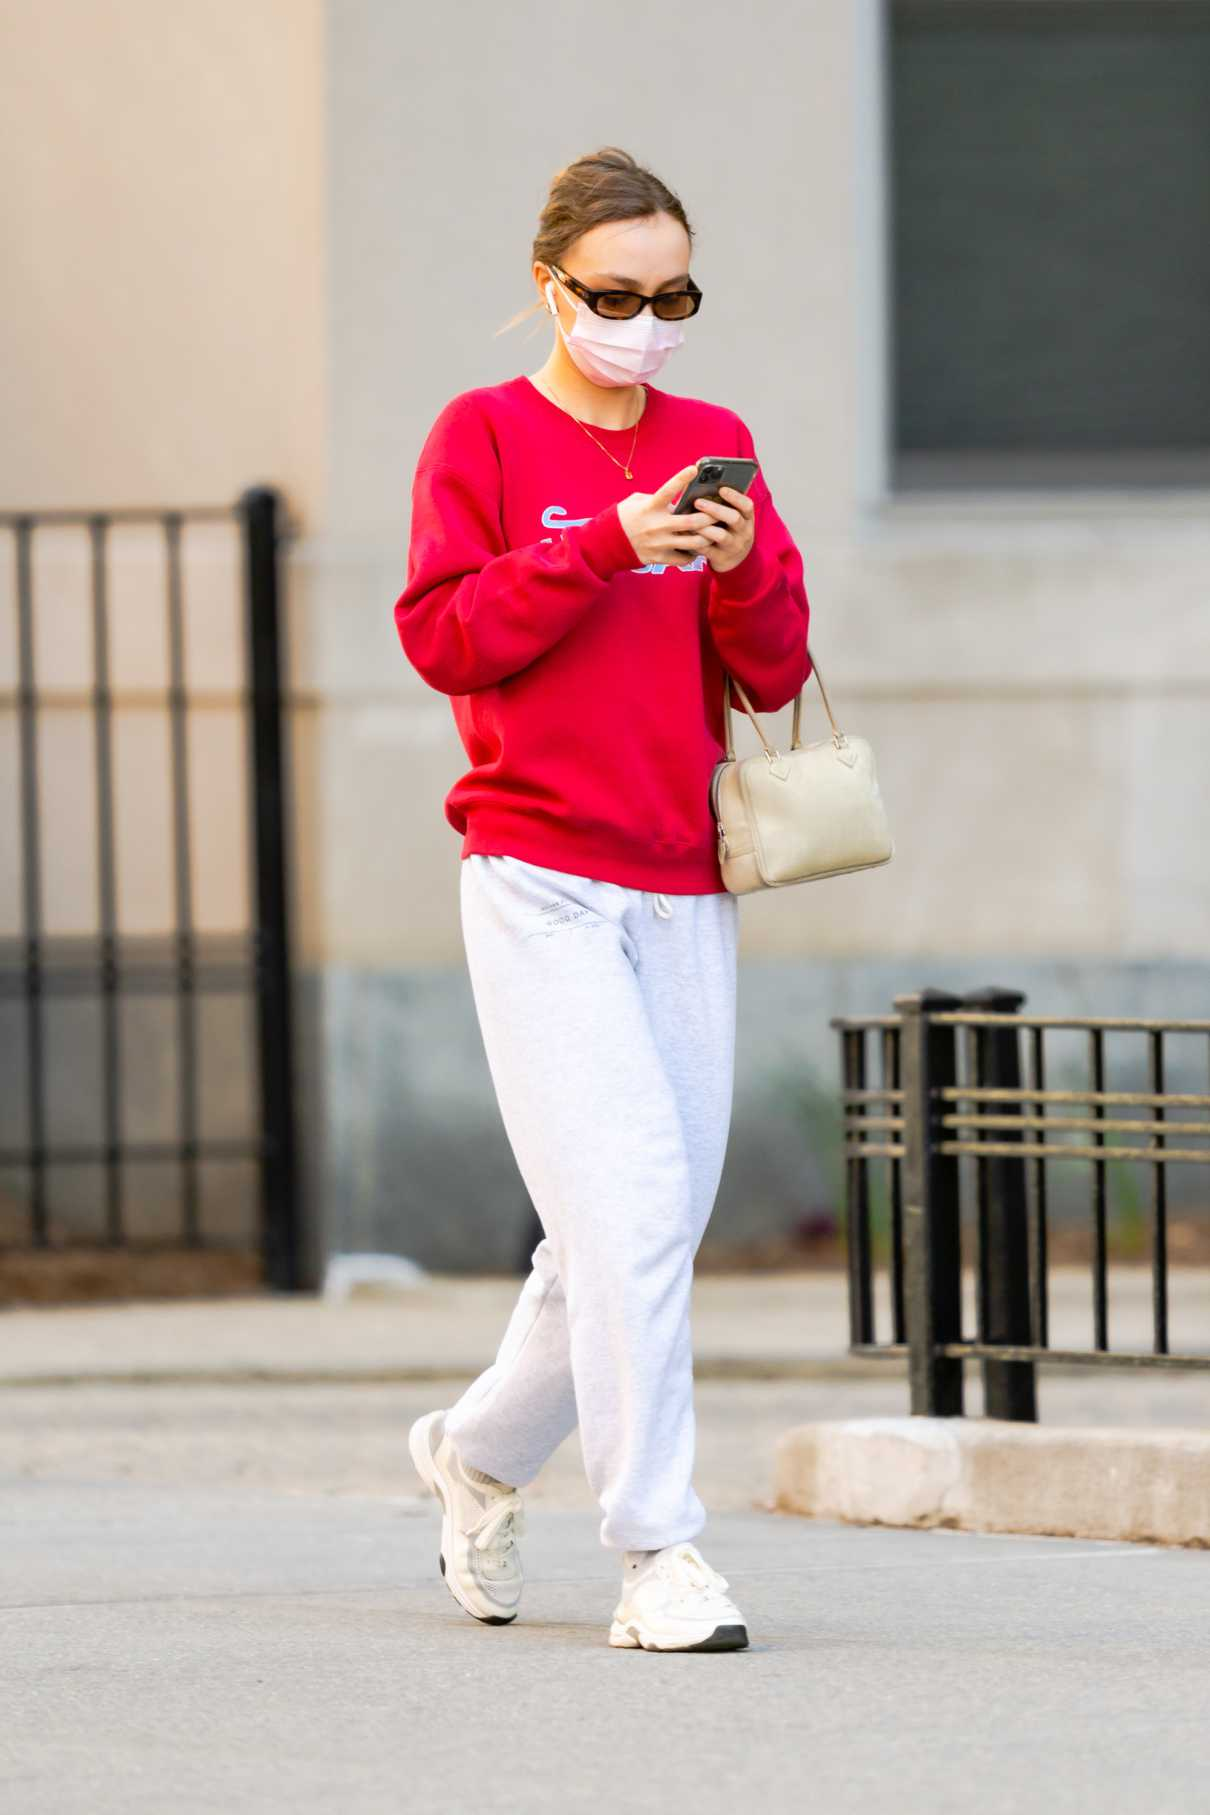 Lily-Rose Depp in a Red Sweatshirt